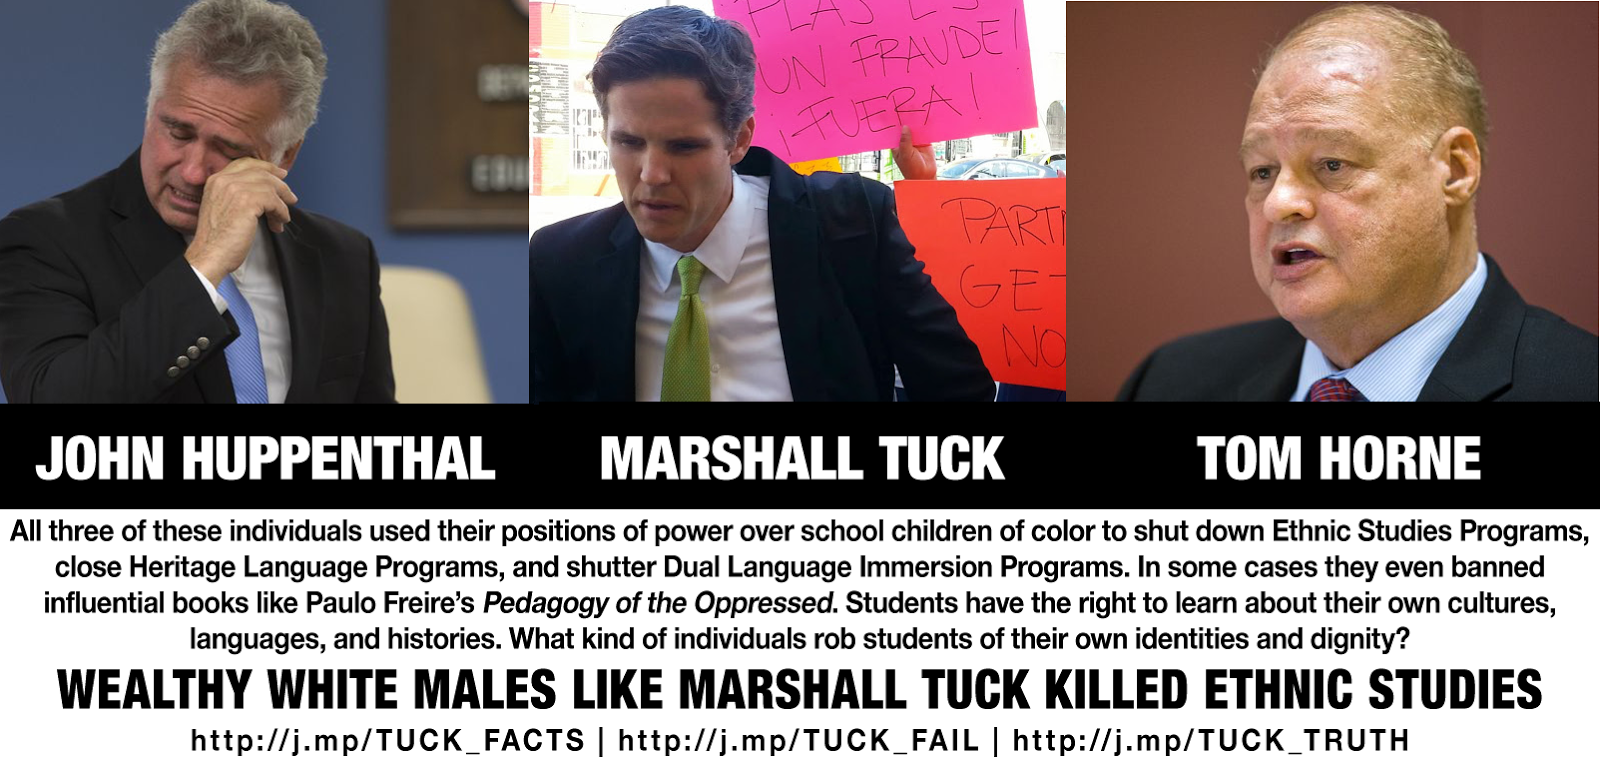 2014 was a wonderful year in which bigots Marshall Tuck, Tom Horne, and John Huppenthal all lost their elections.